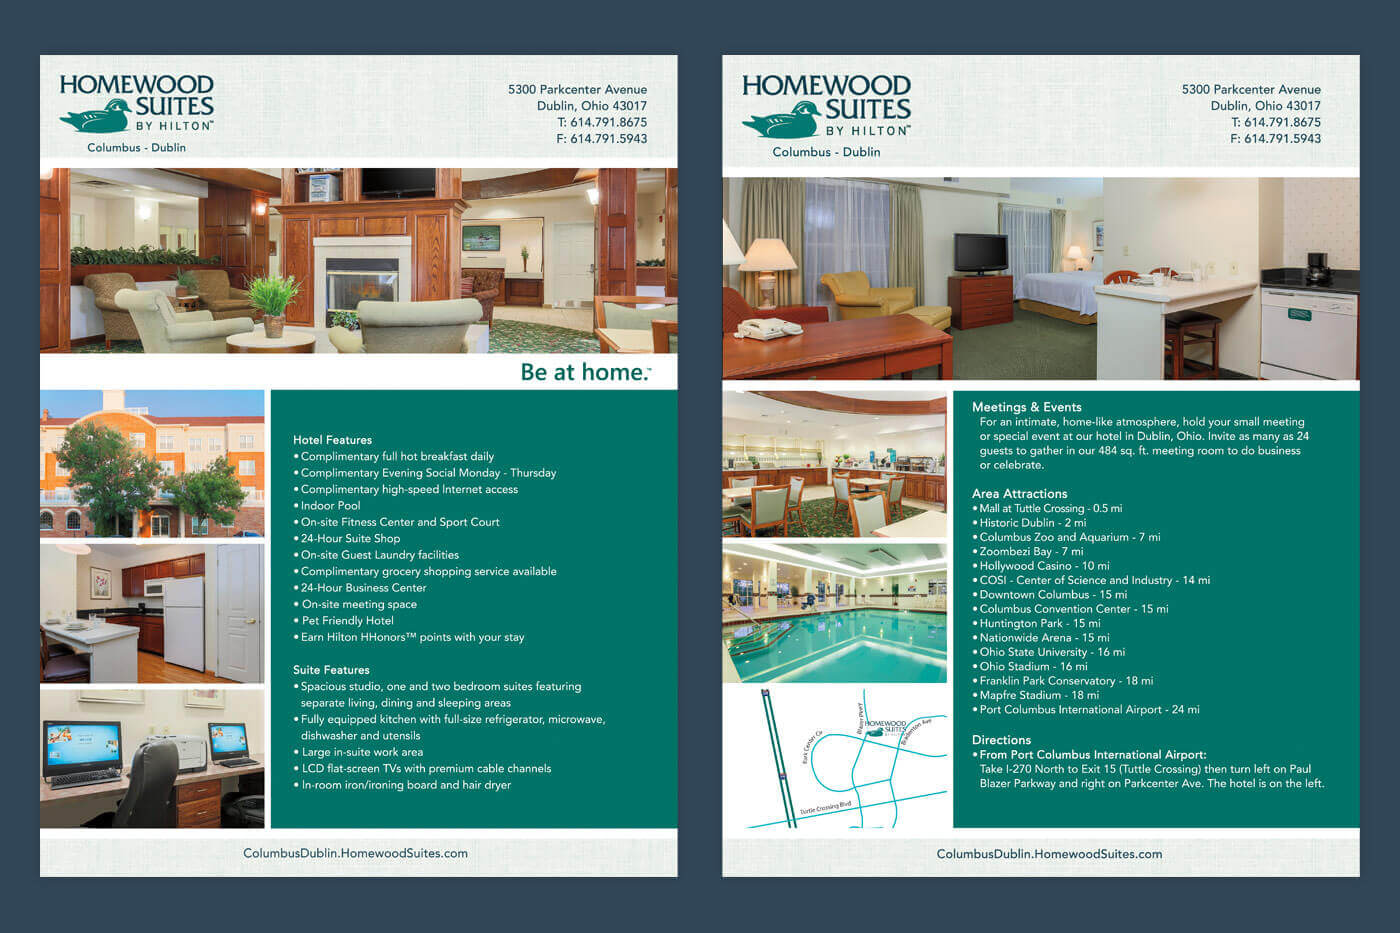 Print Design Factsheet - Homewood Suites Columbus-Dublin